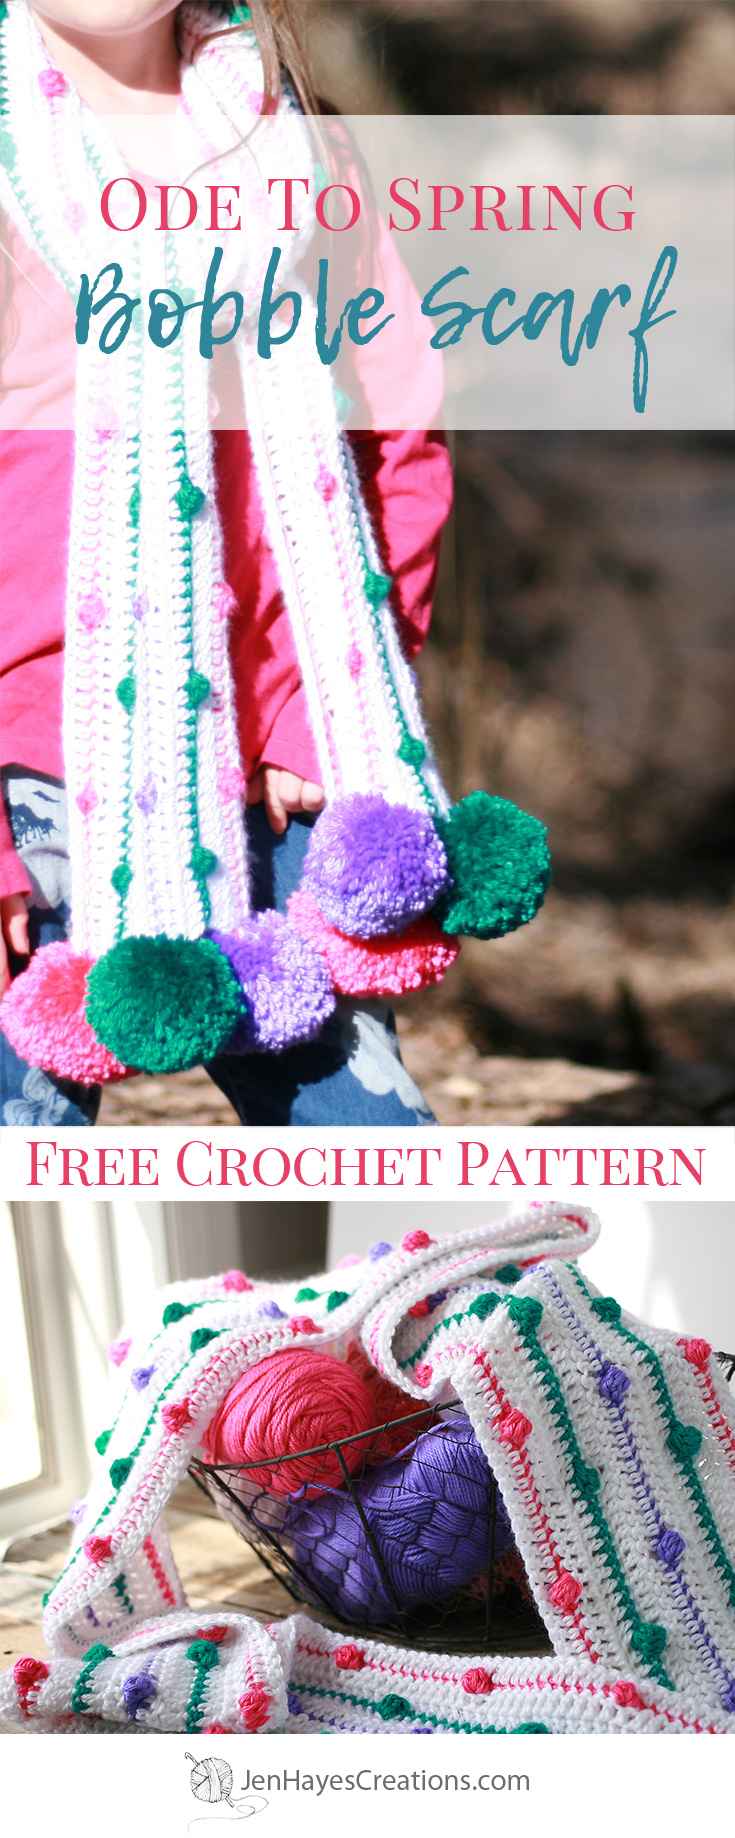 Ode to Spring Crochet Bobble Scarf | Jen Hayes Creations